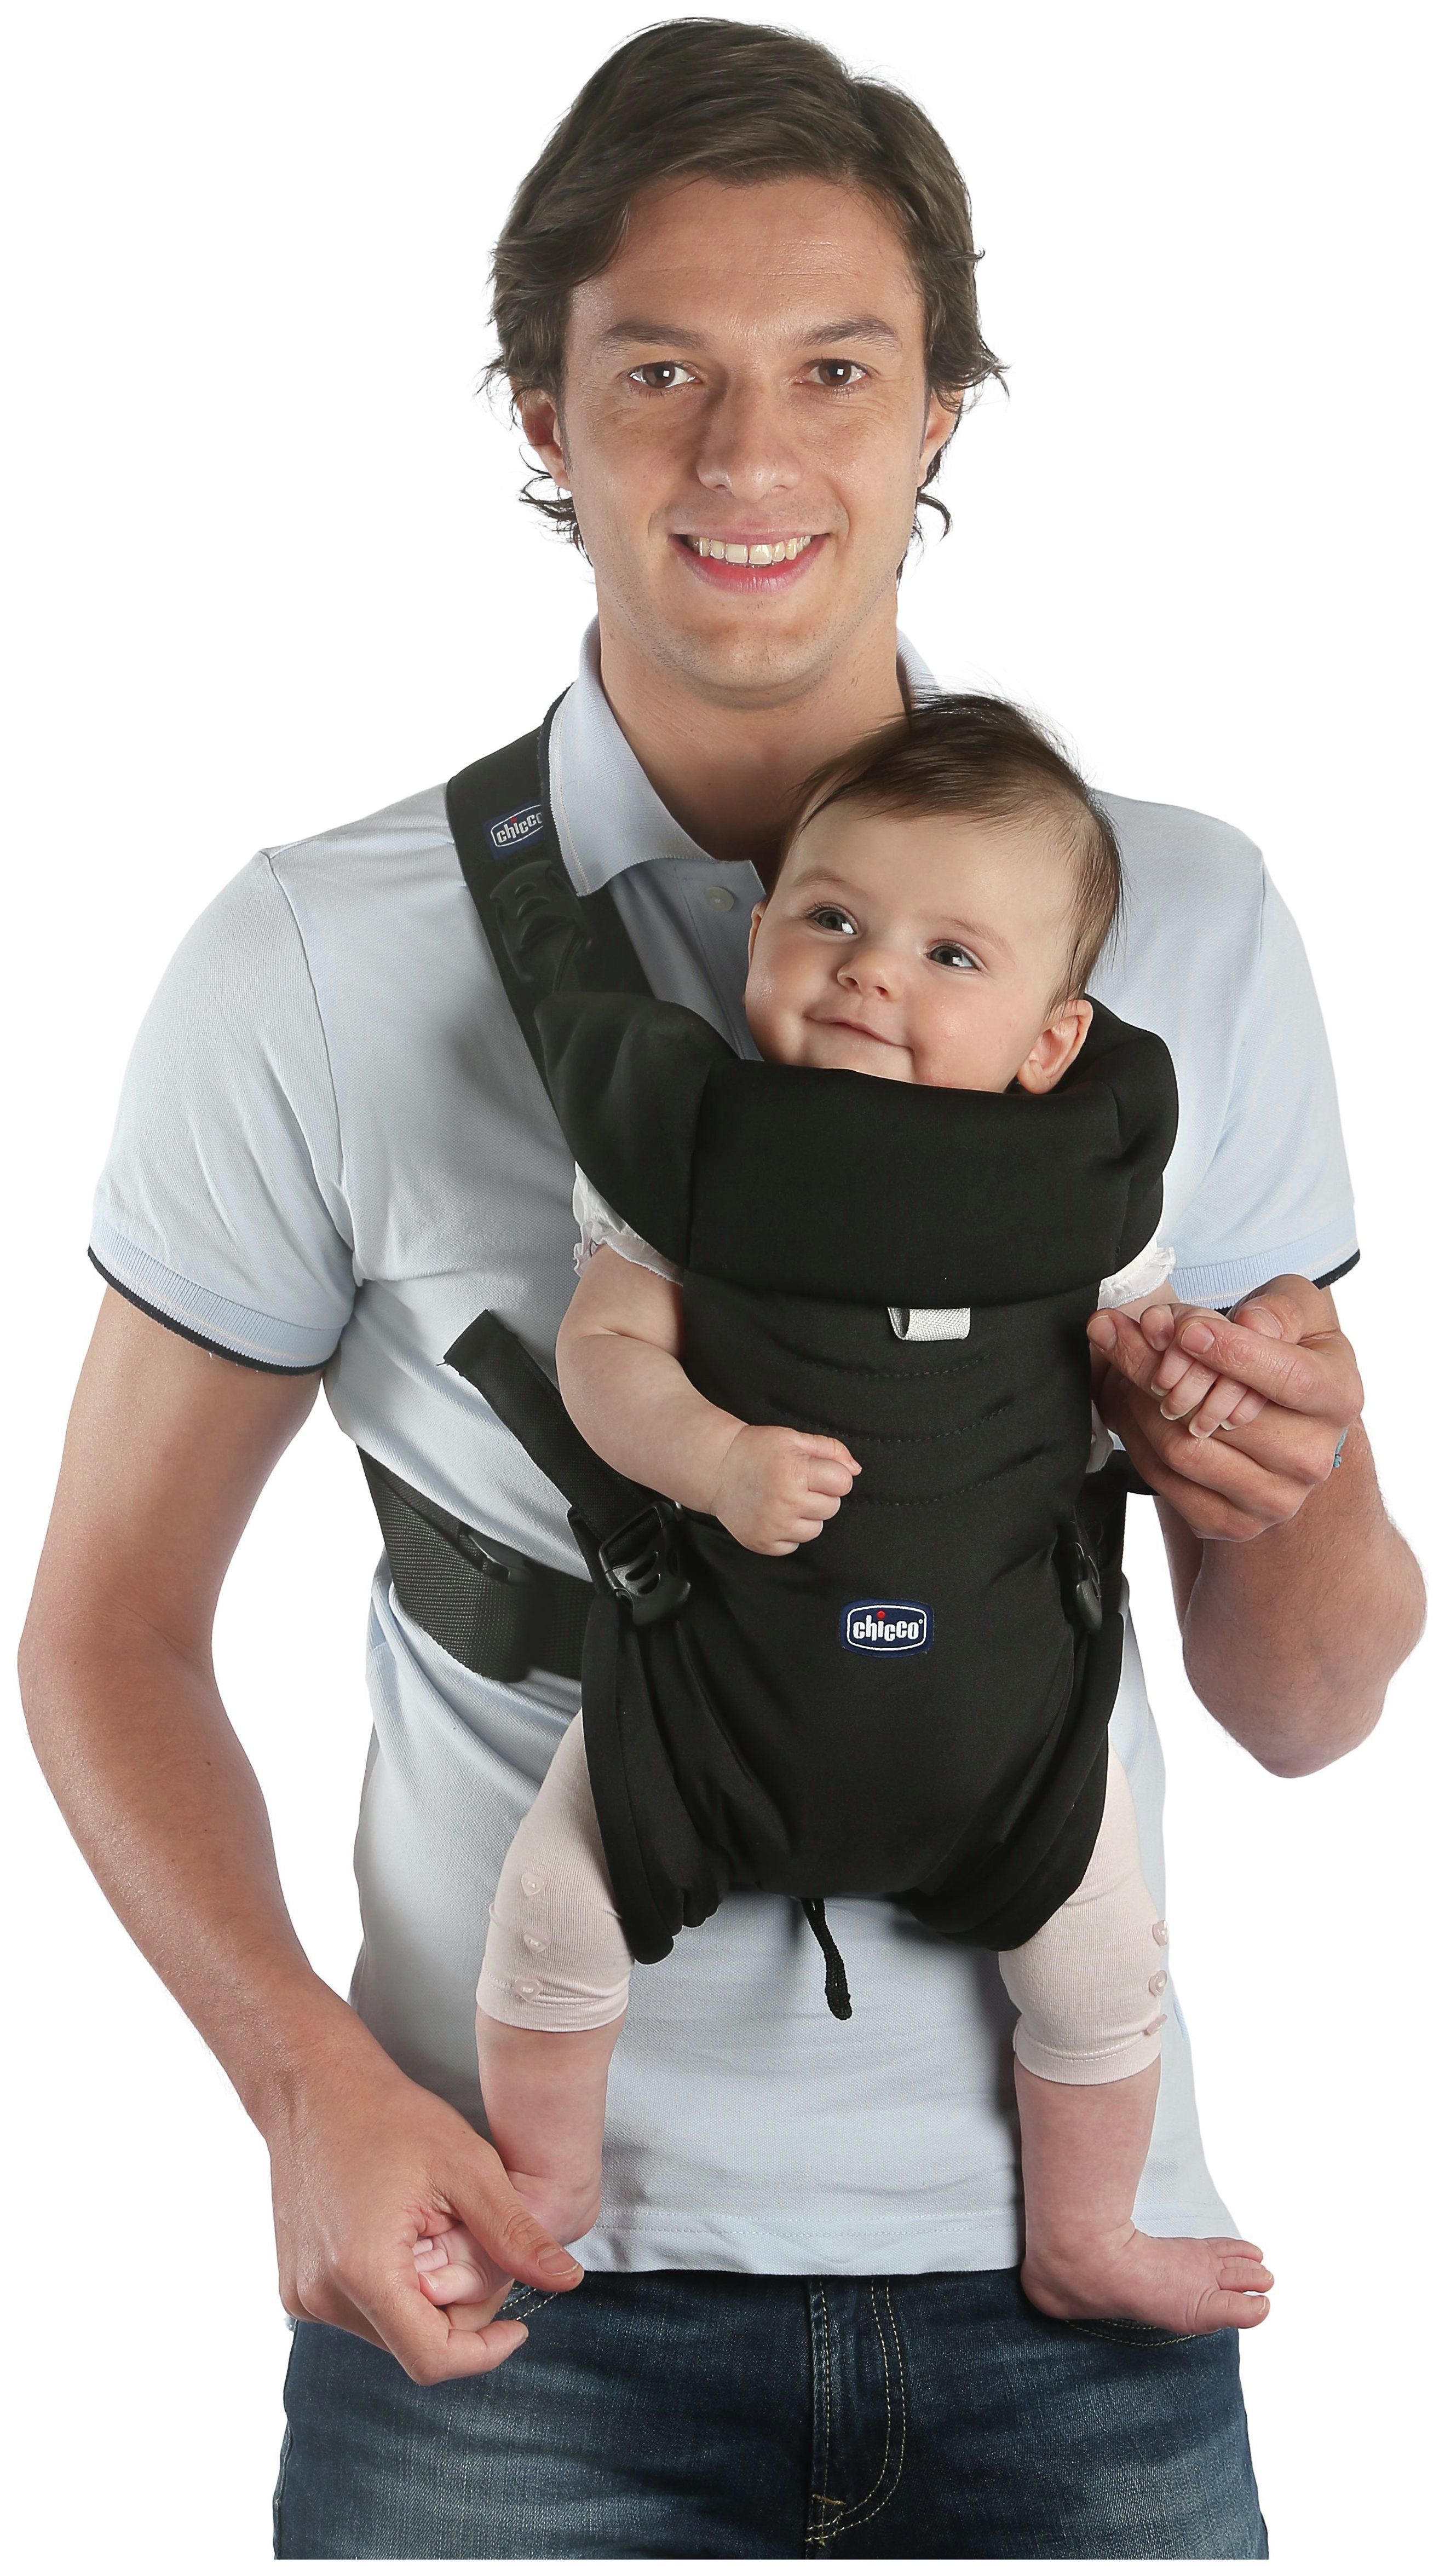 Image of Chicco Easyfit Carrier